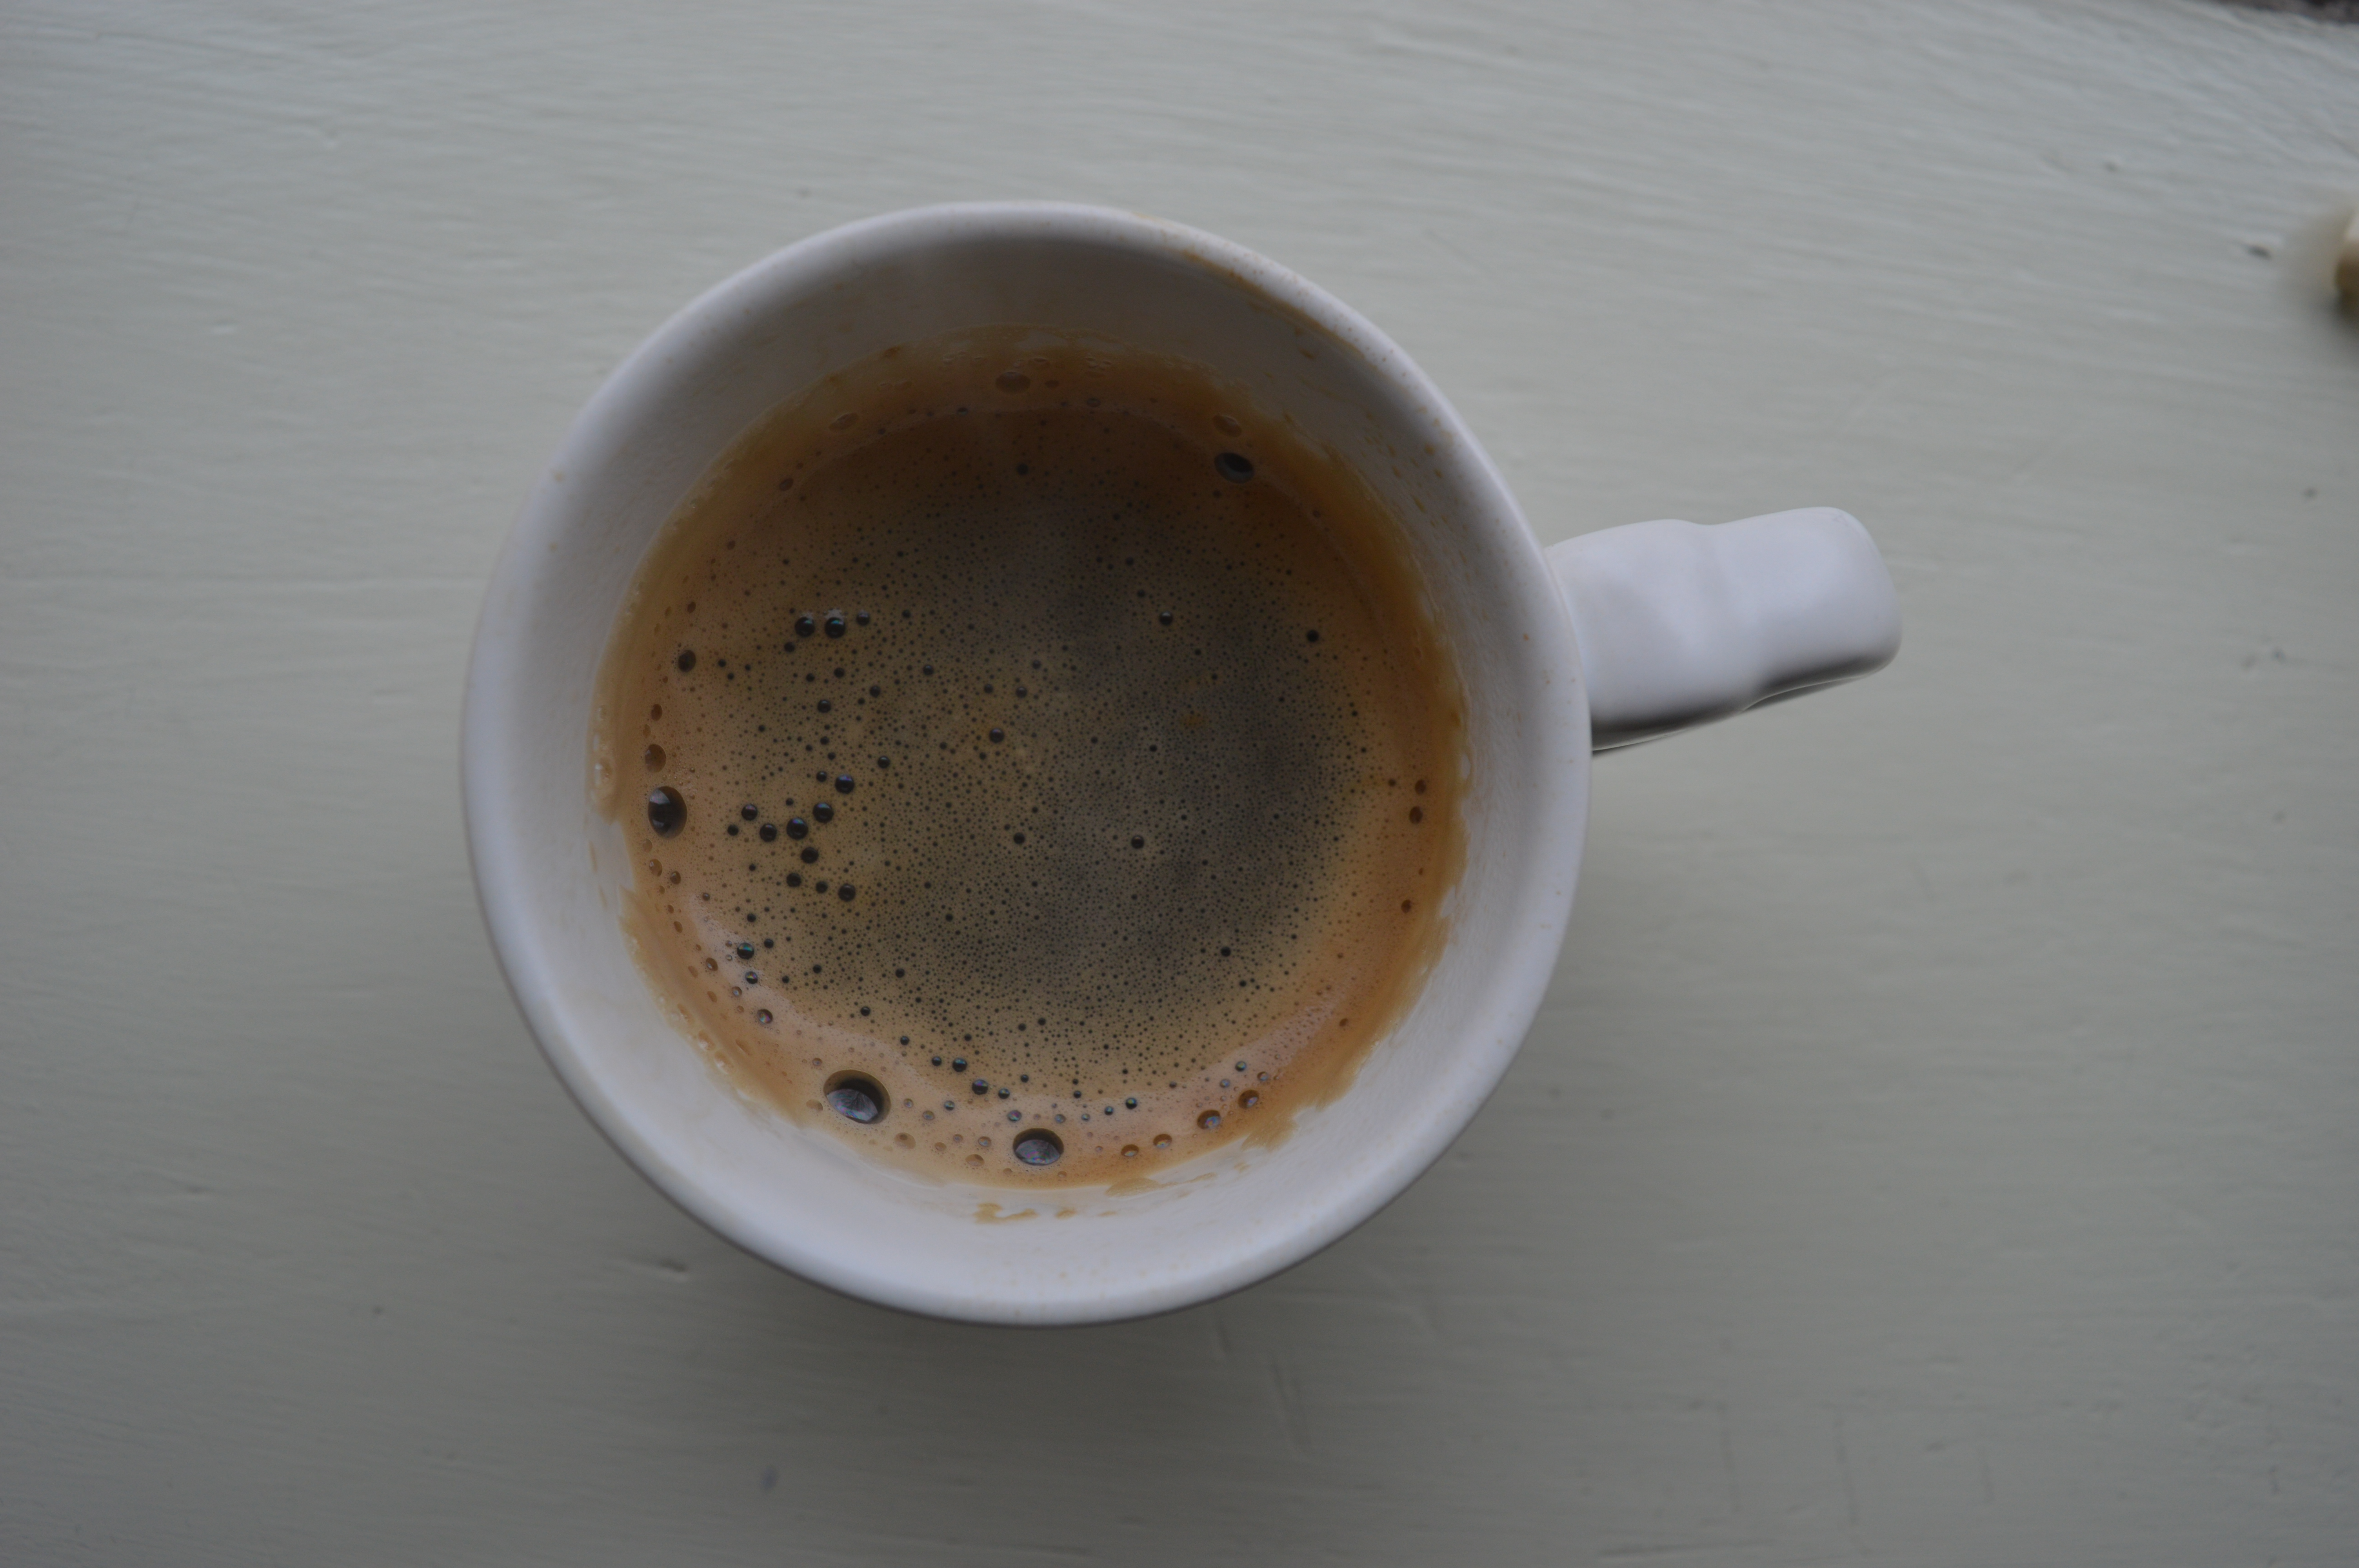 Foamy Coffee, Six Months, and Watch out for this (TOL #66)